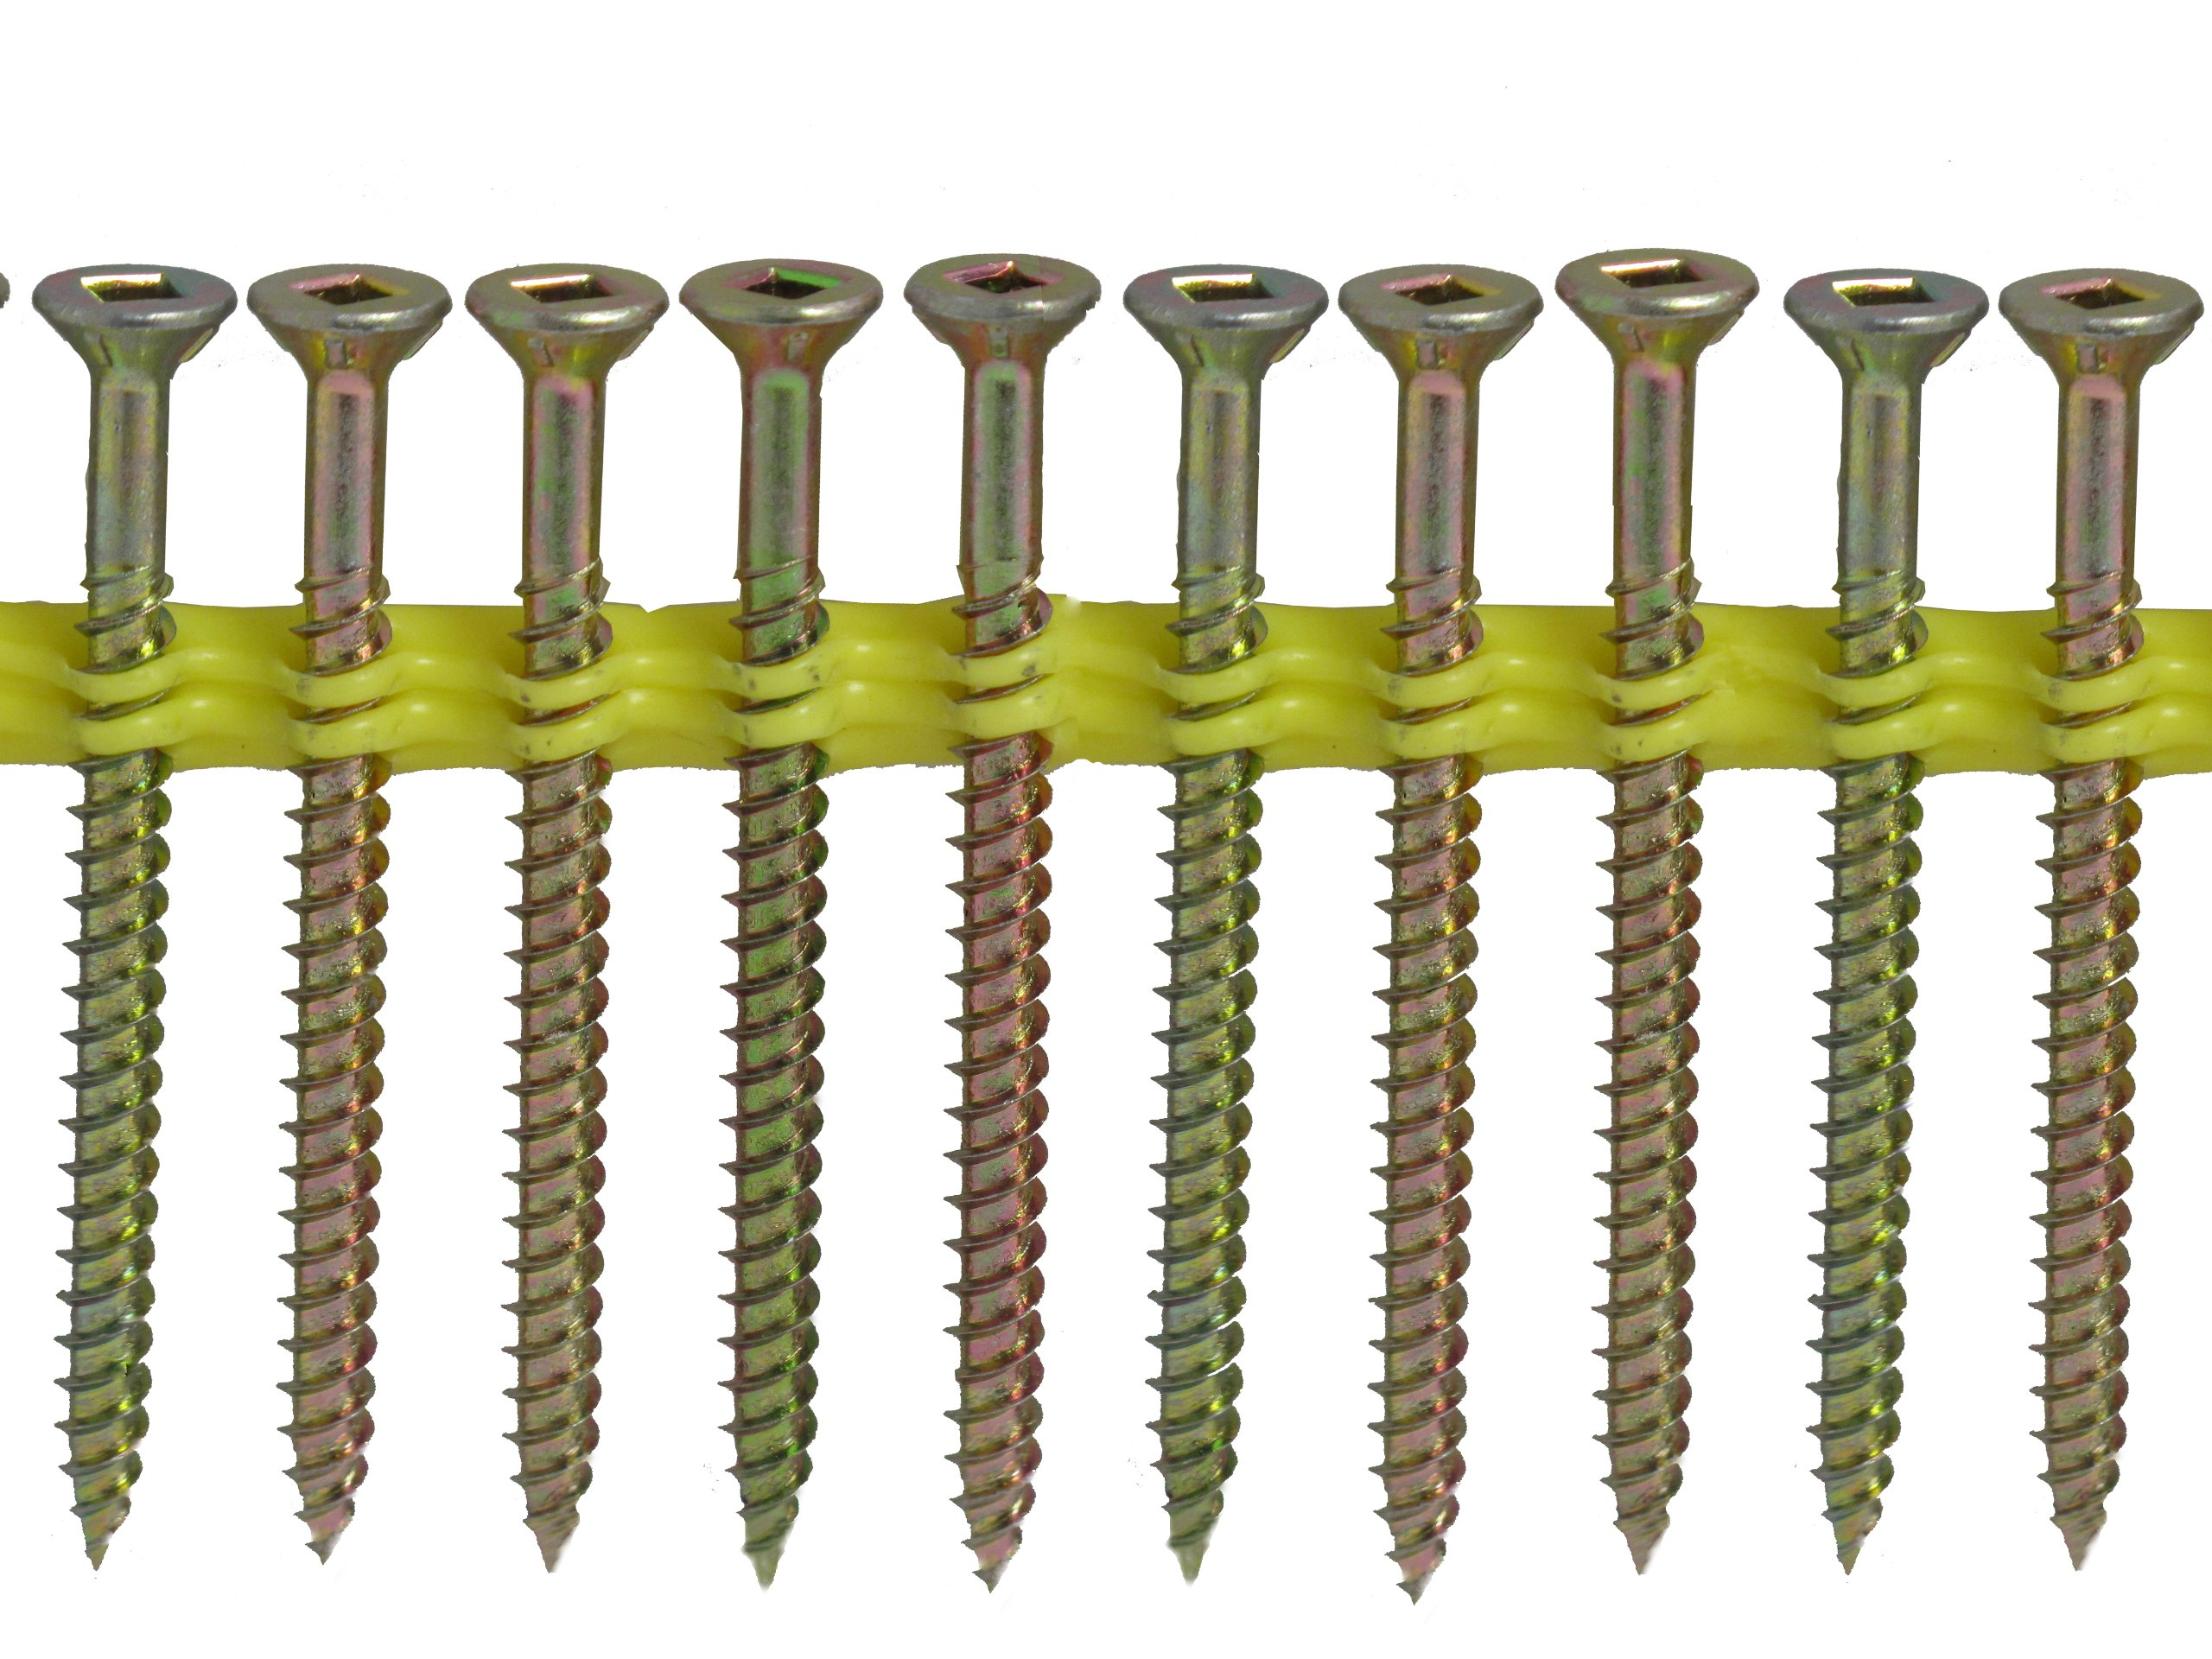 Quik Drive WSNTL3S Wood Screws 3-Inch Course Twin Threads, Yellow Zinc Coating